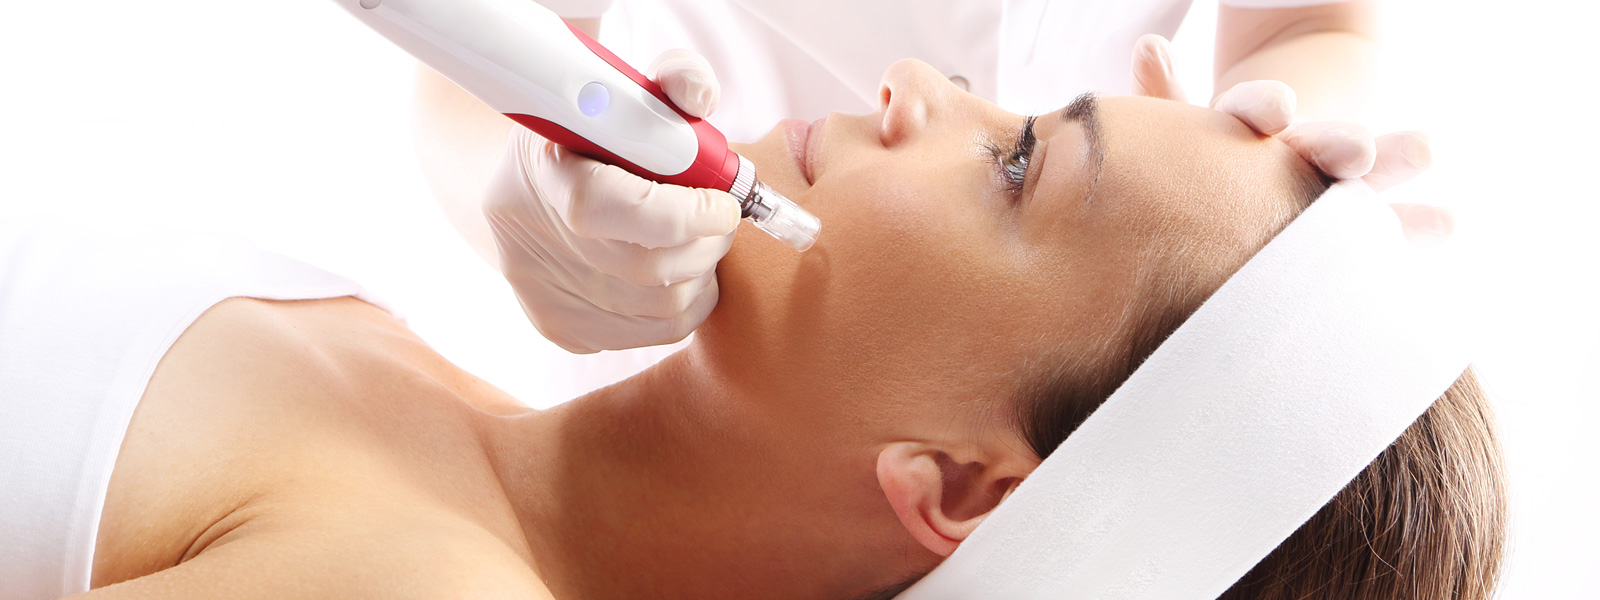 A Patient Having PRP Microneedling Treatment